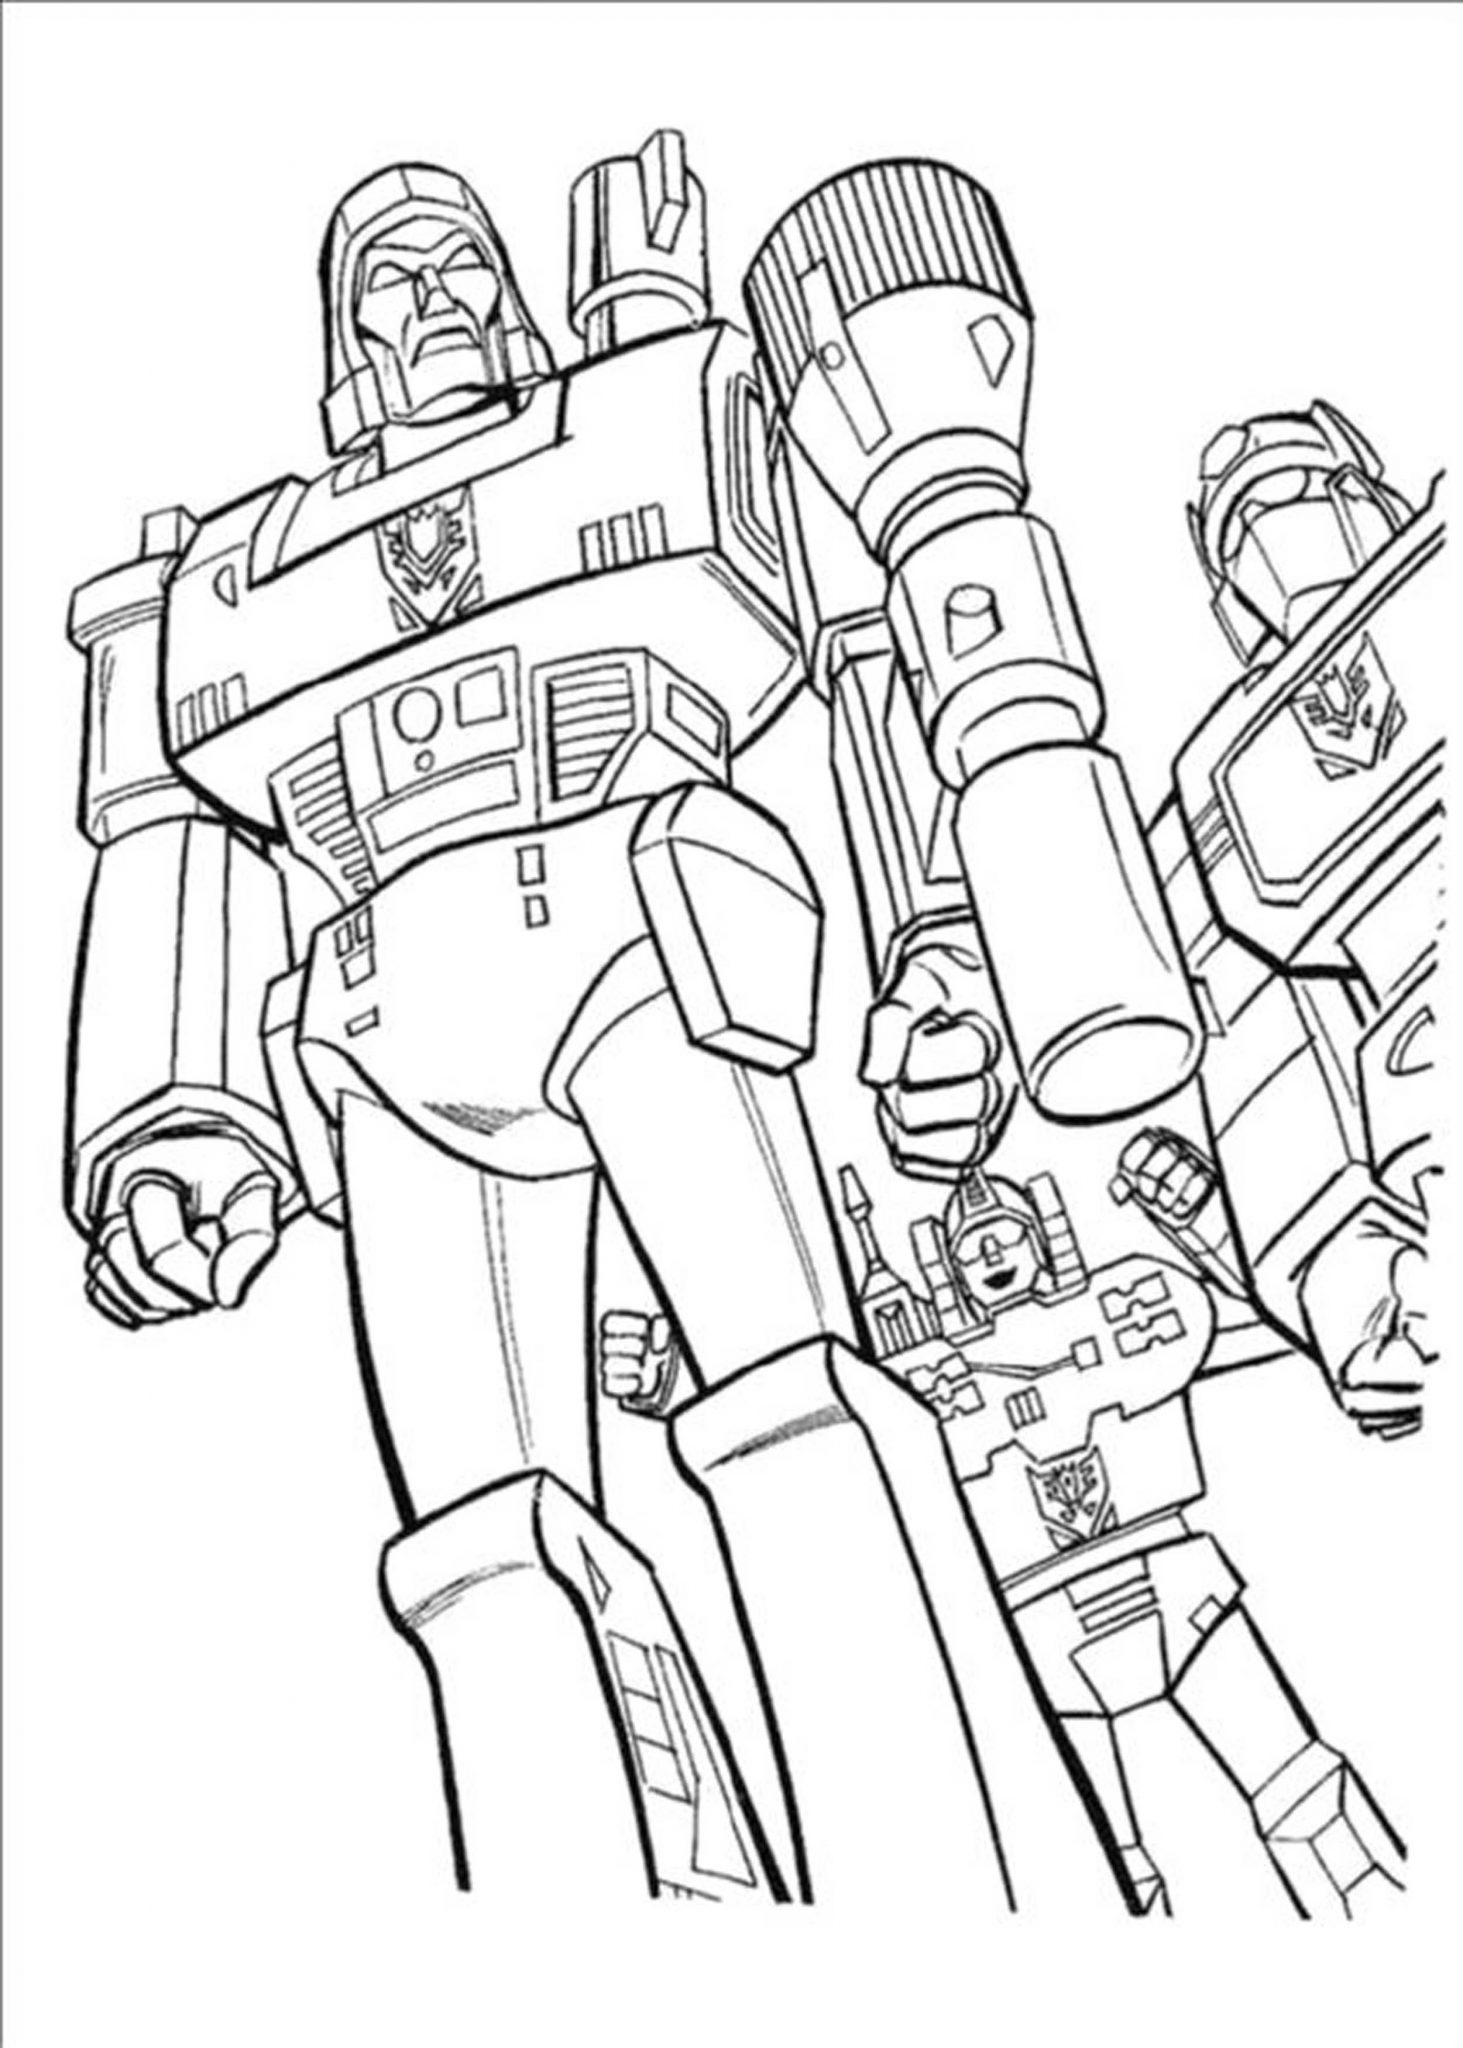 coloring transformers free printable transformers coloring pages for kids transformers coloring